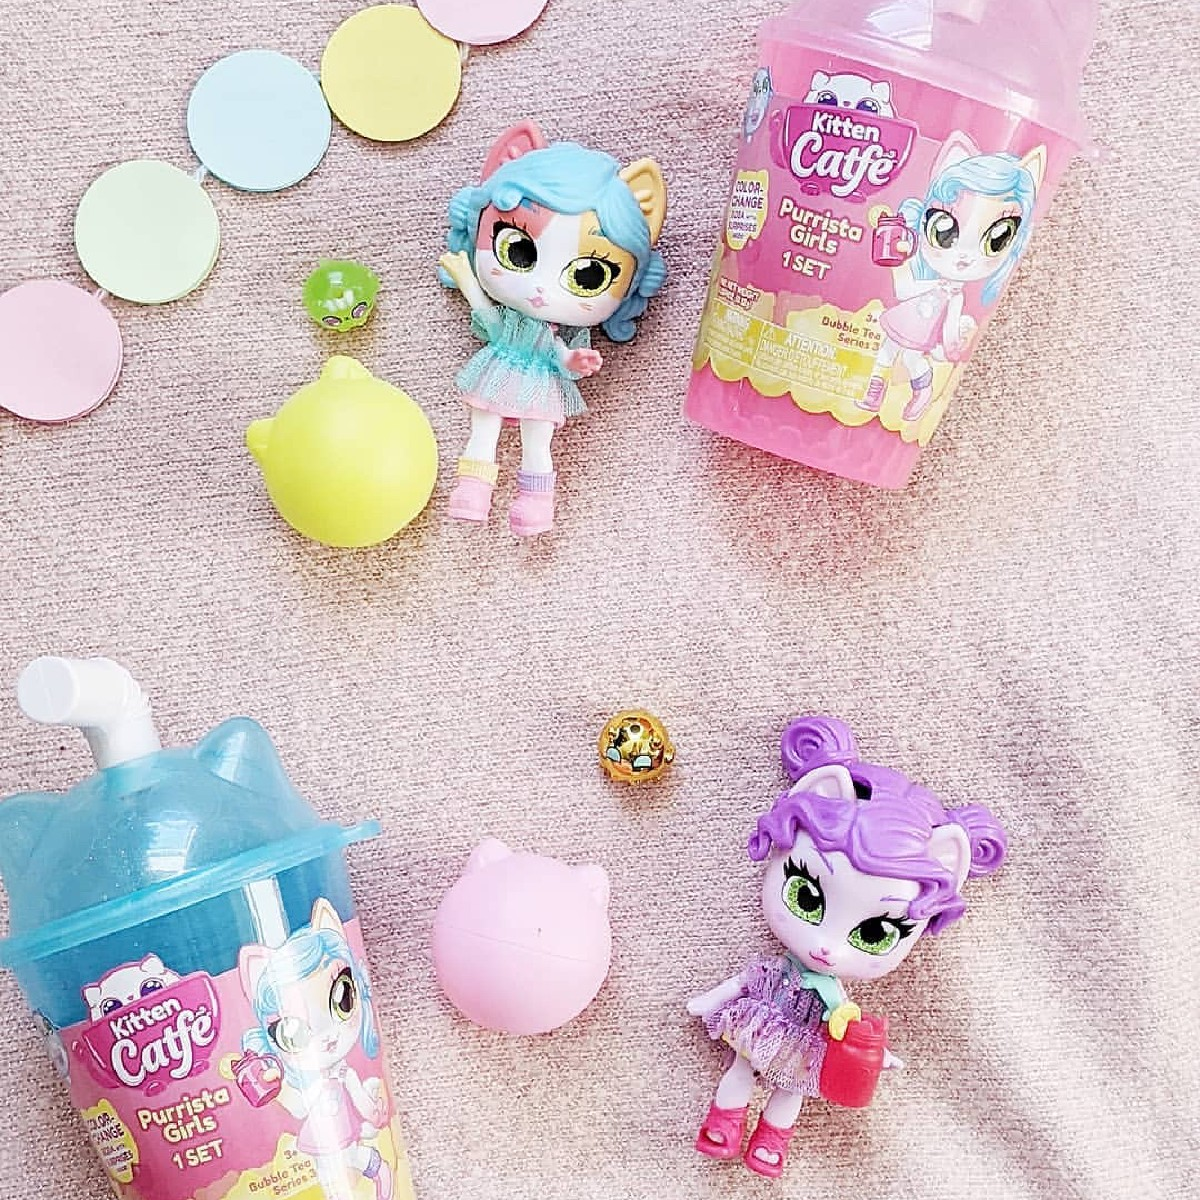 It's #Caturday and these #KittenCatfe Purrista Girls are ready to play!🐾💖  #JAKKSToys